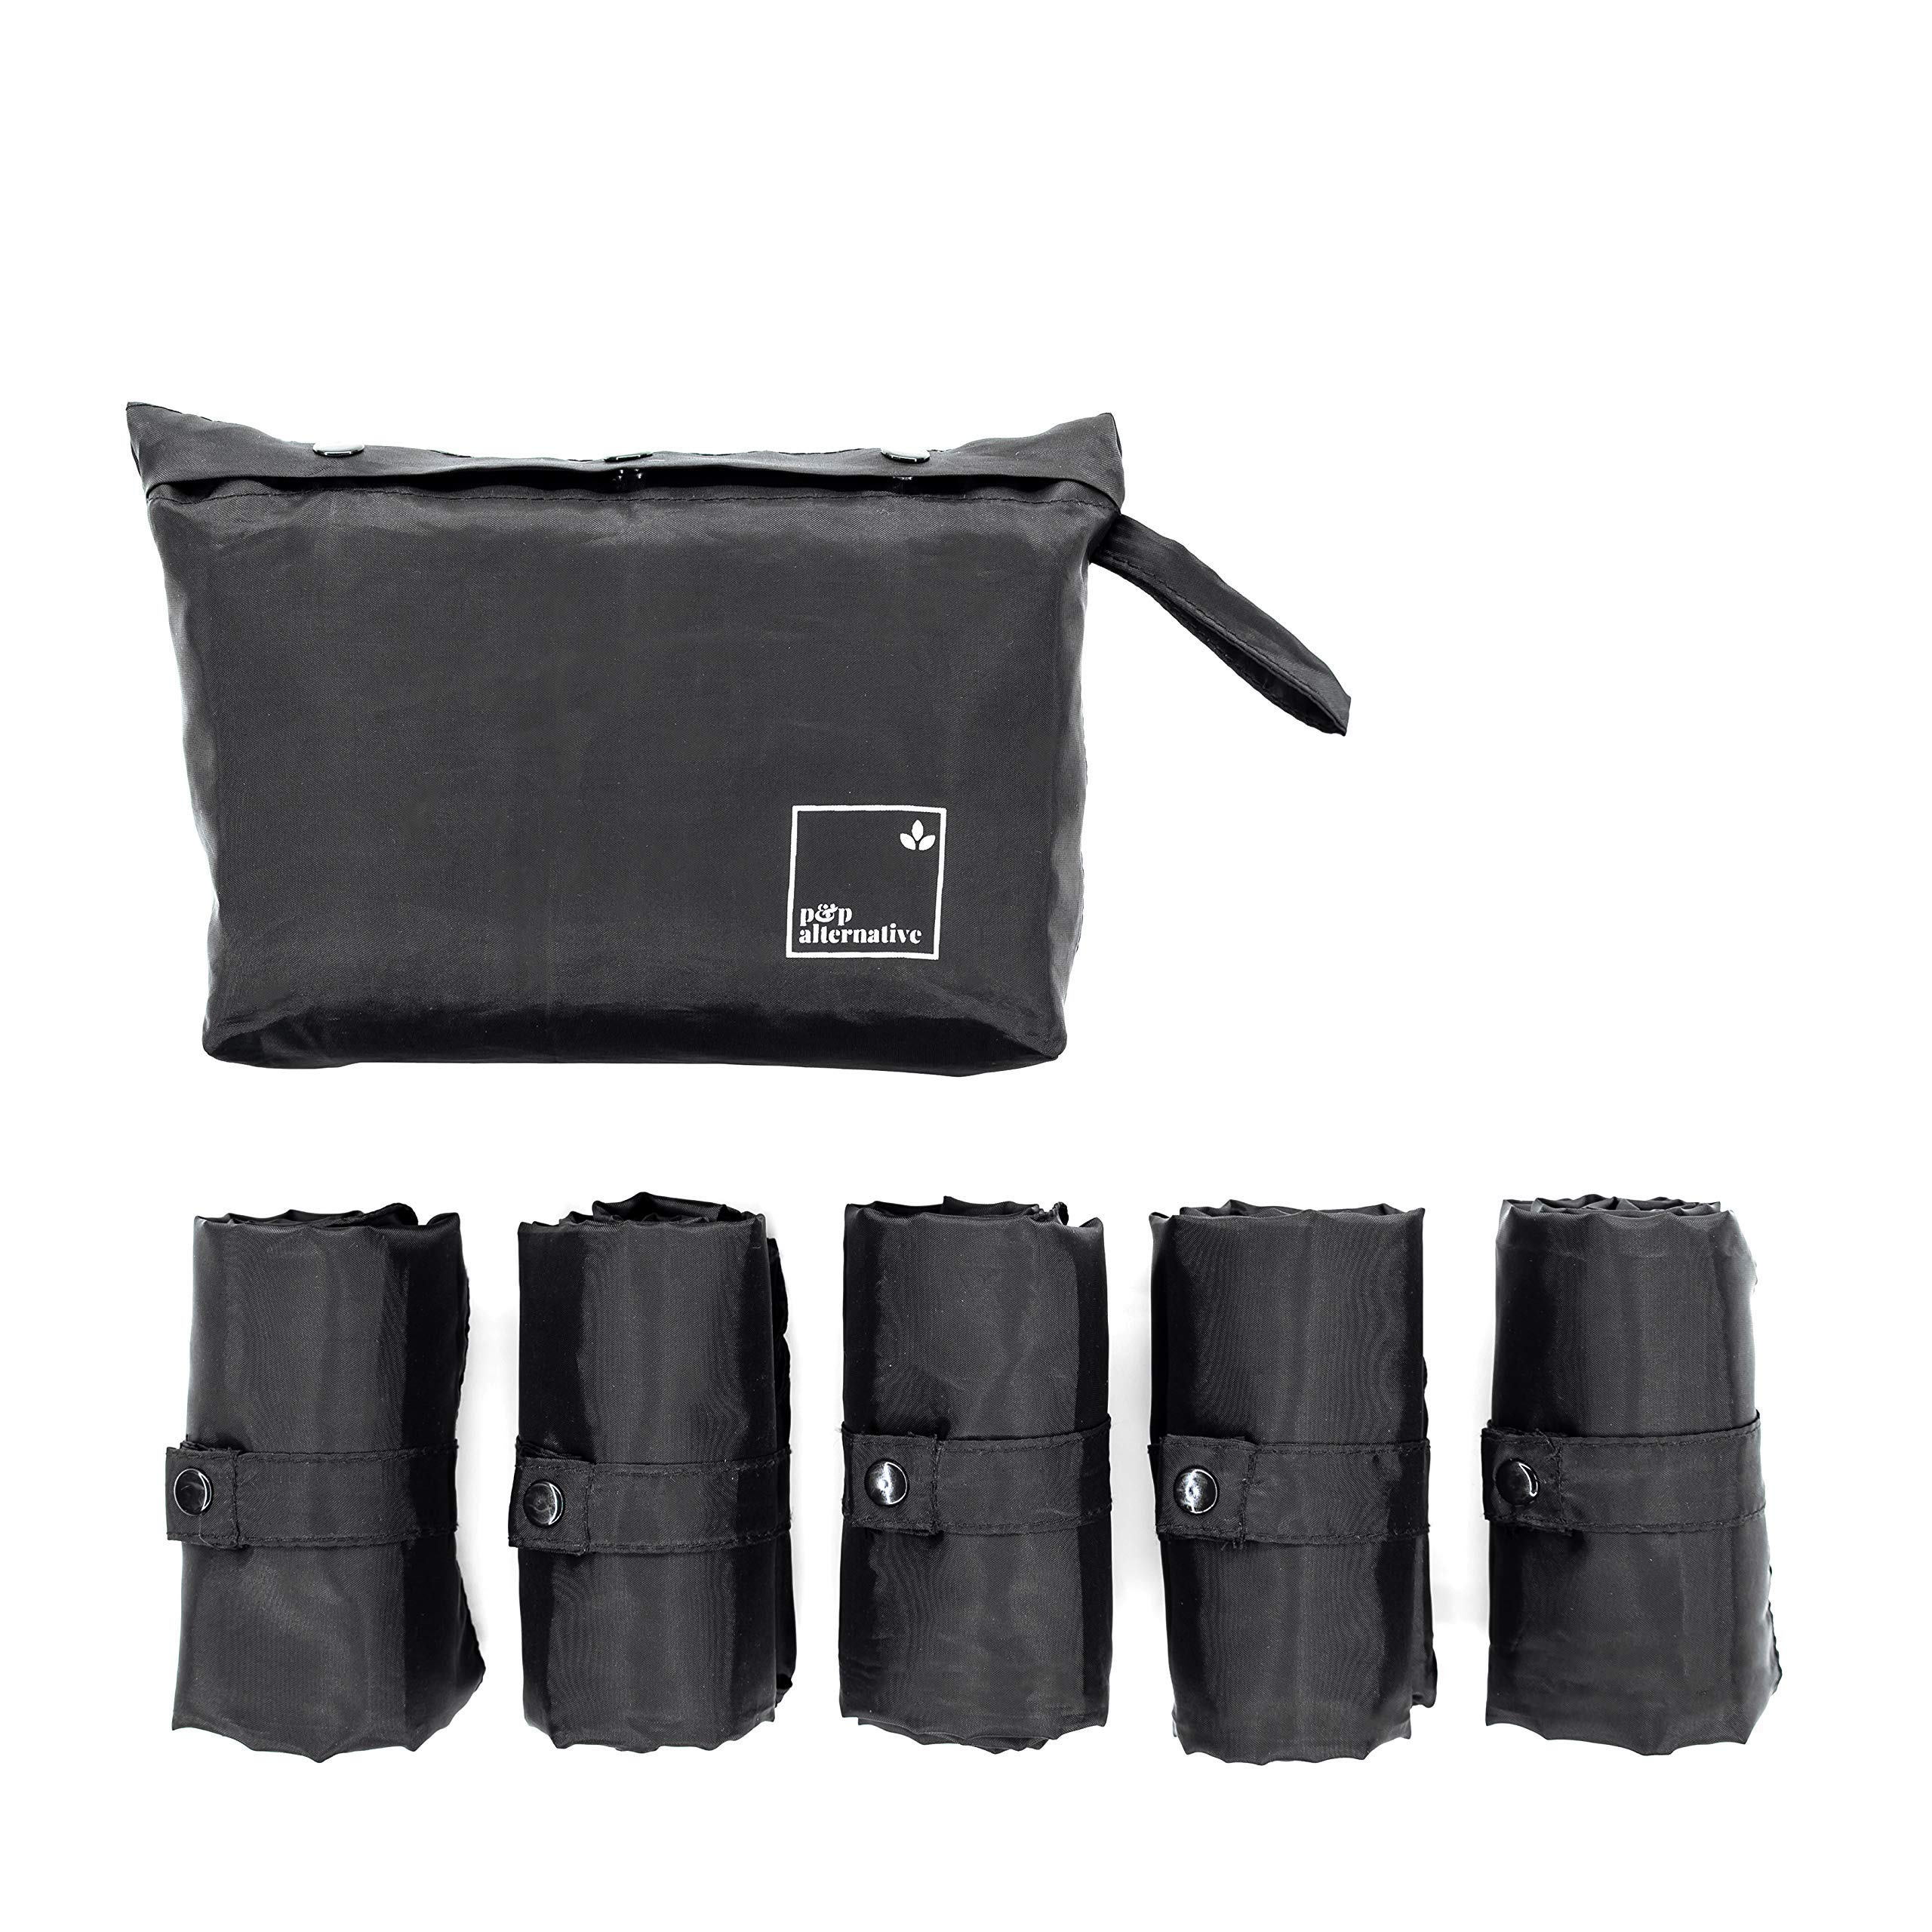 Reusable Grocery Bags Set of 5 with a Pouch, Foldable, Heavy Duty, Eco-Friendly, Unisex, Ultralight Everyday Tote Bag for Groceries, Books, Traveling, Beach, Gym, Laundry, Lunch in JET BLACK